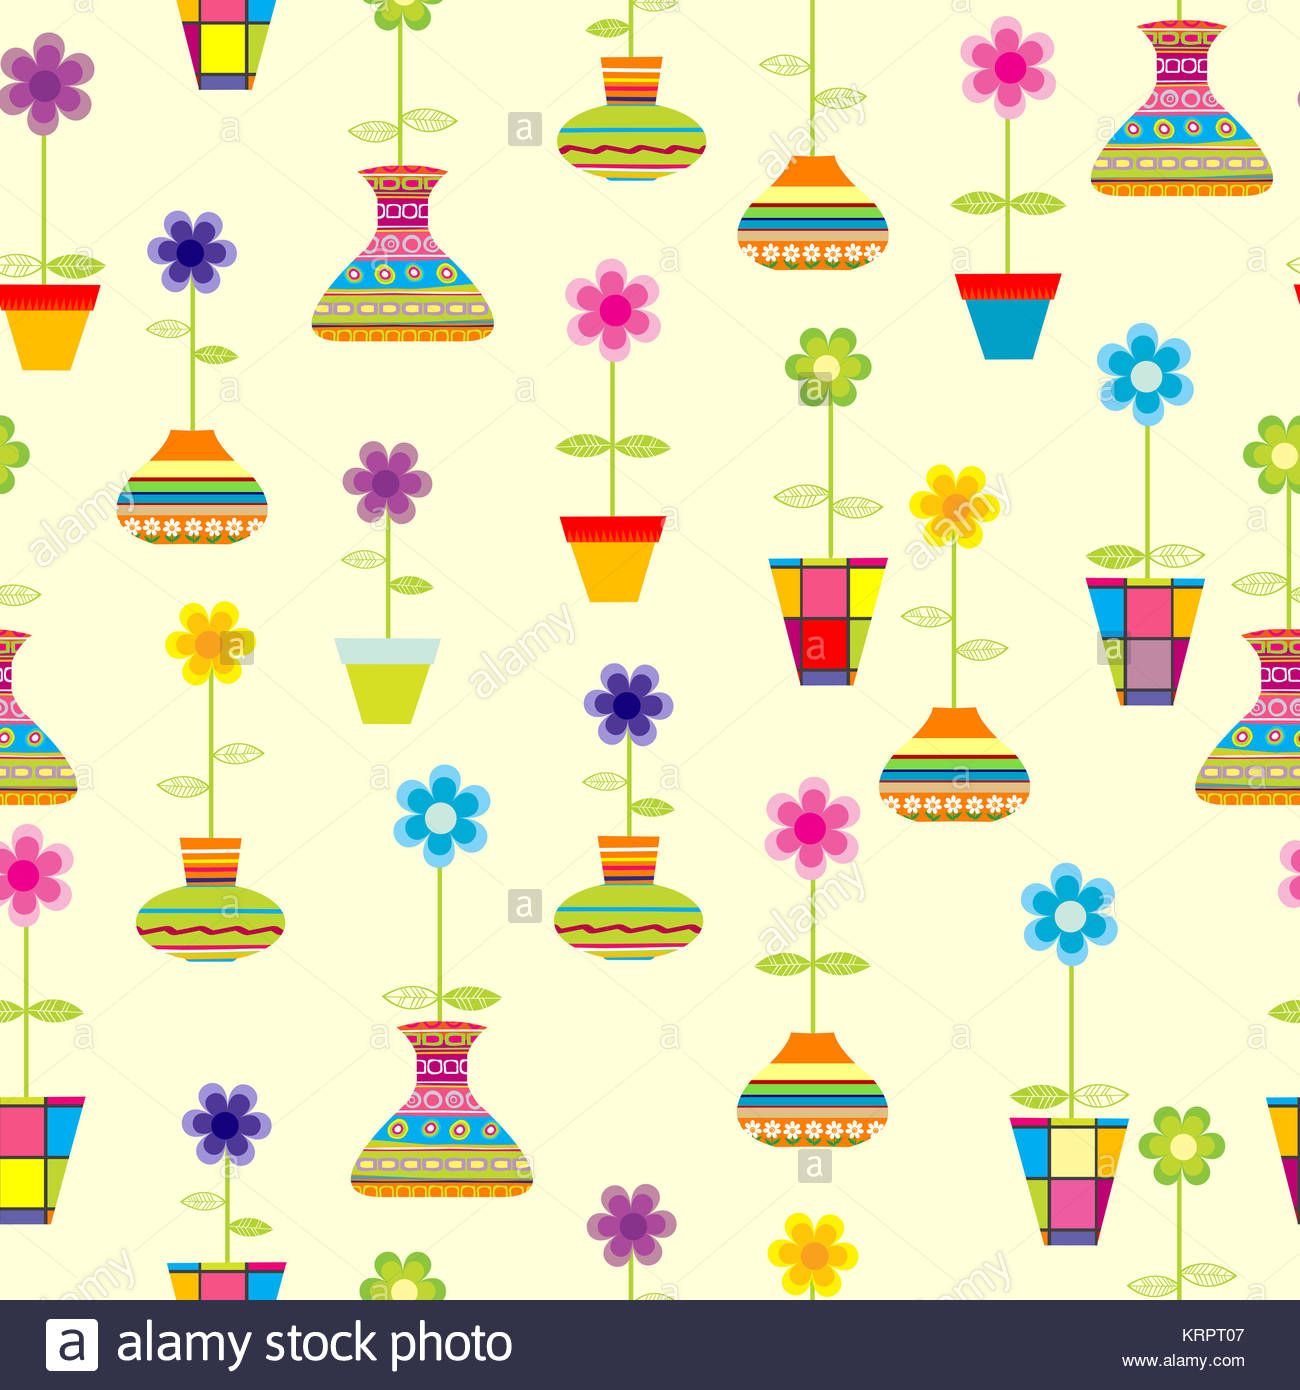 Illustration Cartoon Flower Pot Stock Photos Illustration Cartoon